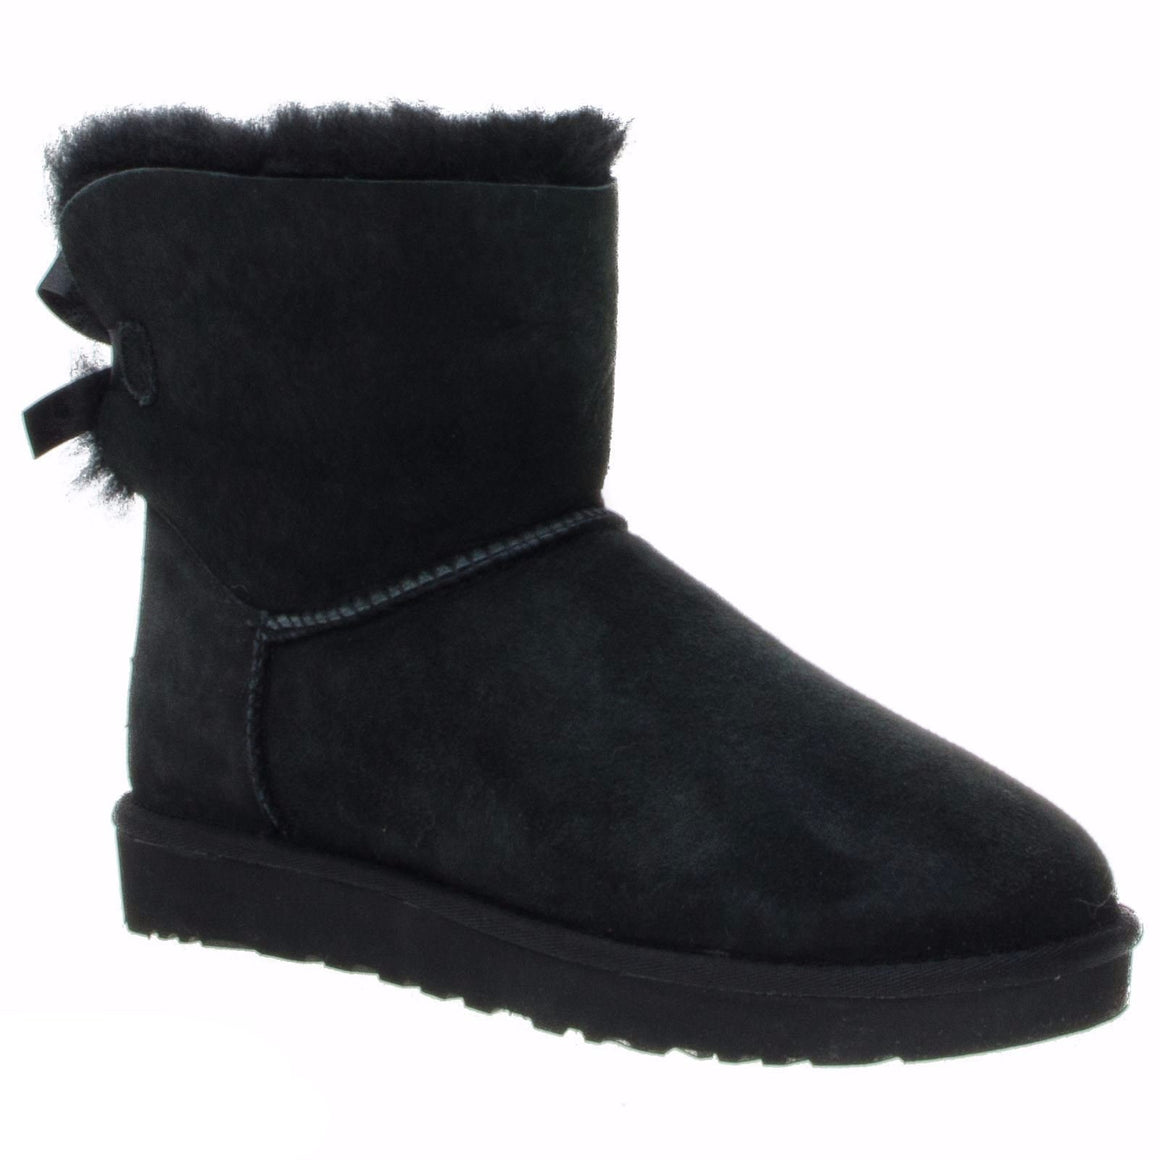 UGG Mini Bailey Bow Black Boots - Toddler